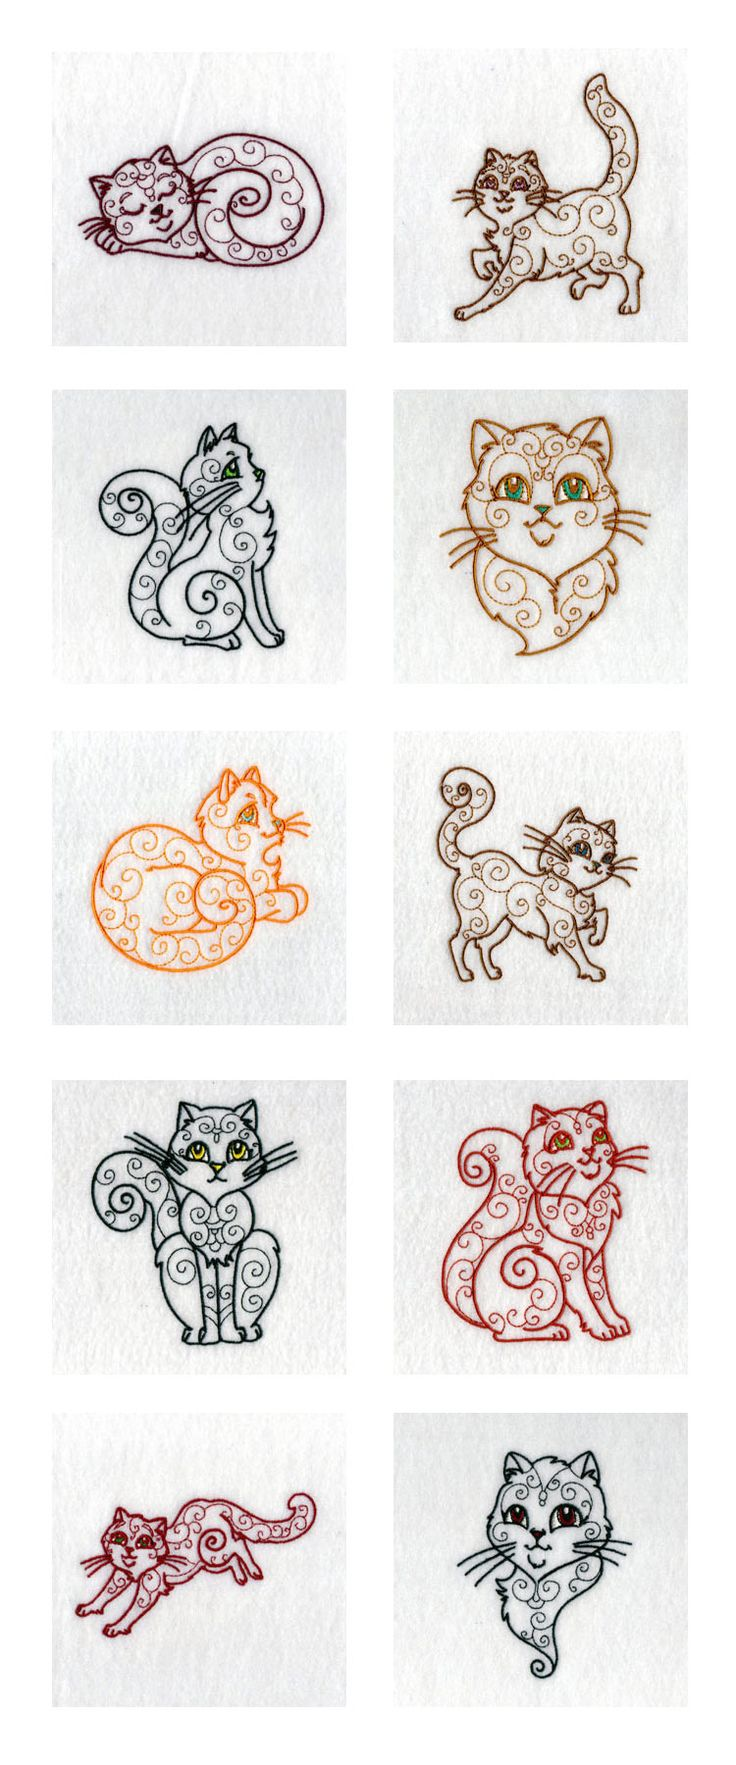 Face tattoos designs and ideas page 7 - Swirly Cats Embroidery Machine Design Details